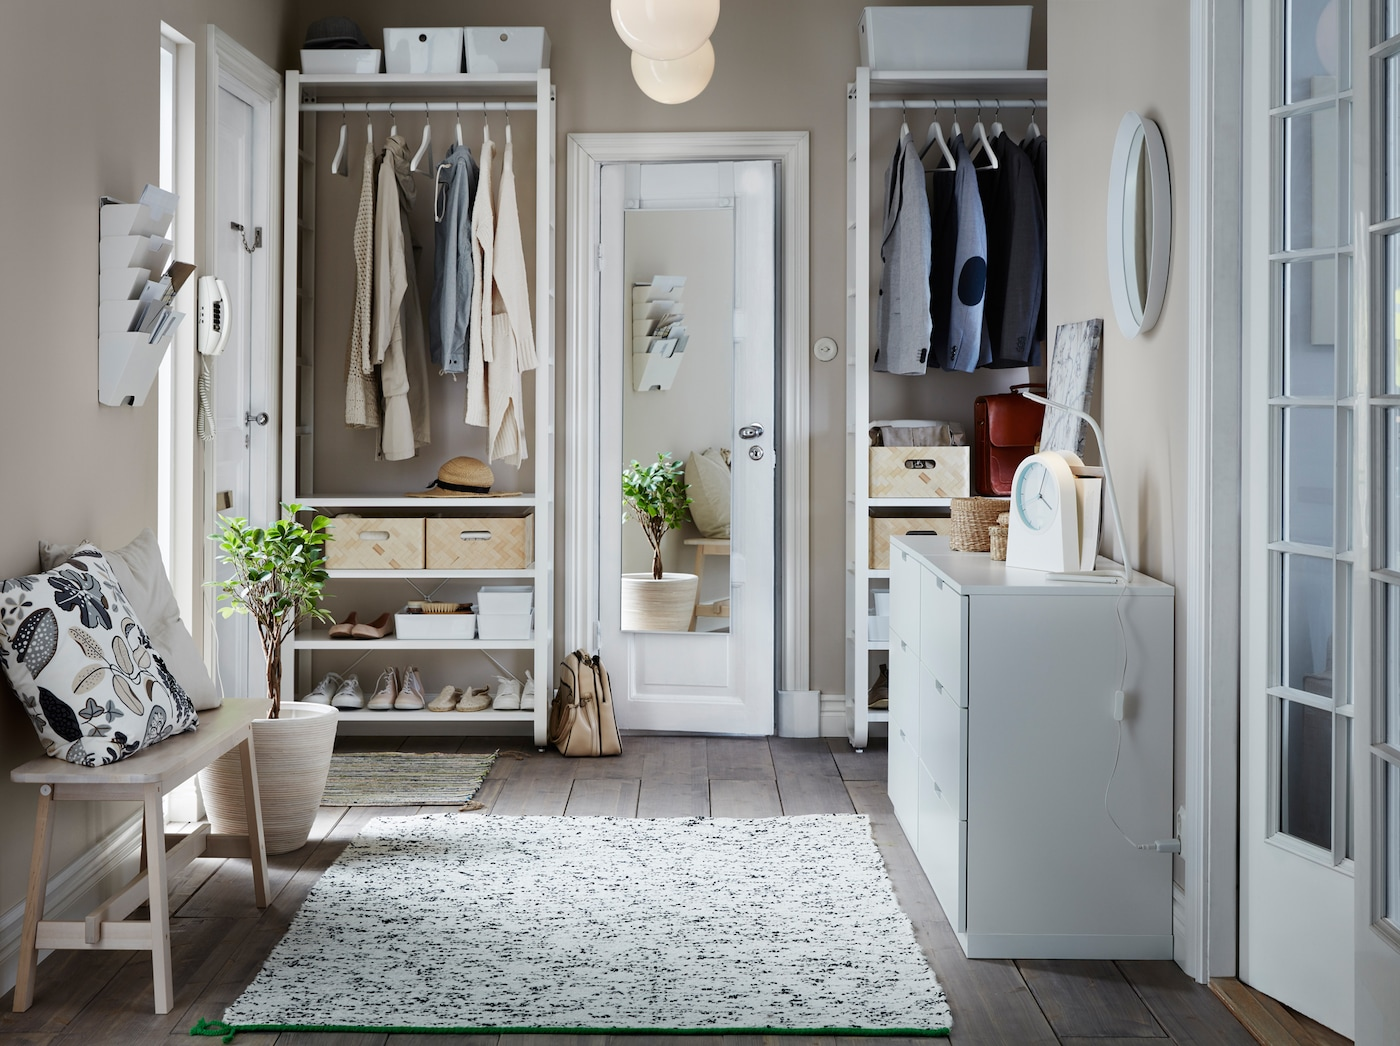 A bright hall with lots of storage space thanks to NORDLI cabinet and white ELVARLI clothes racks from IKEA.